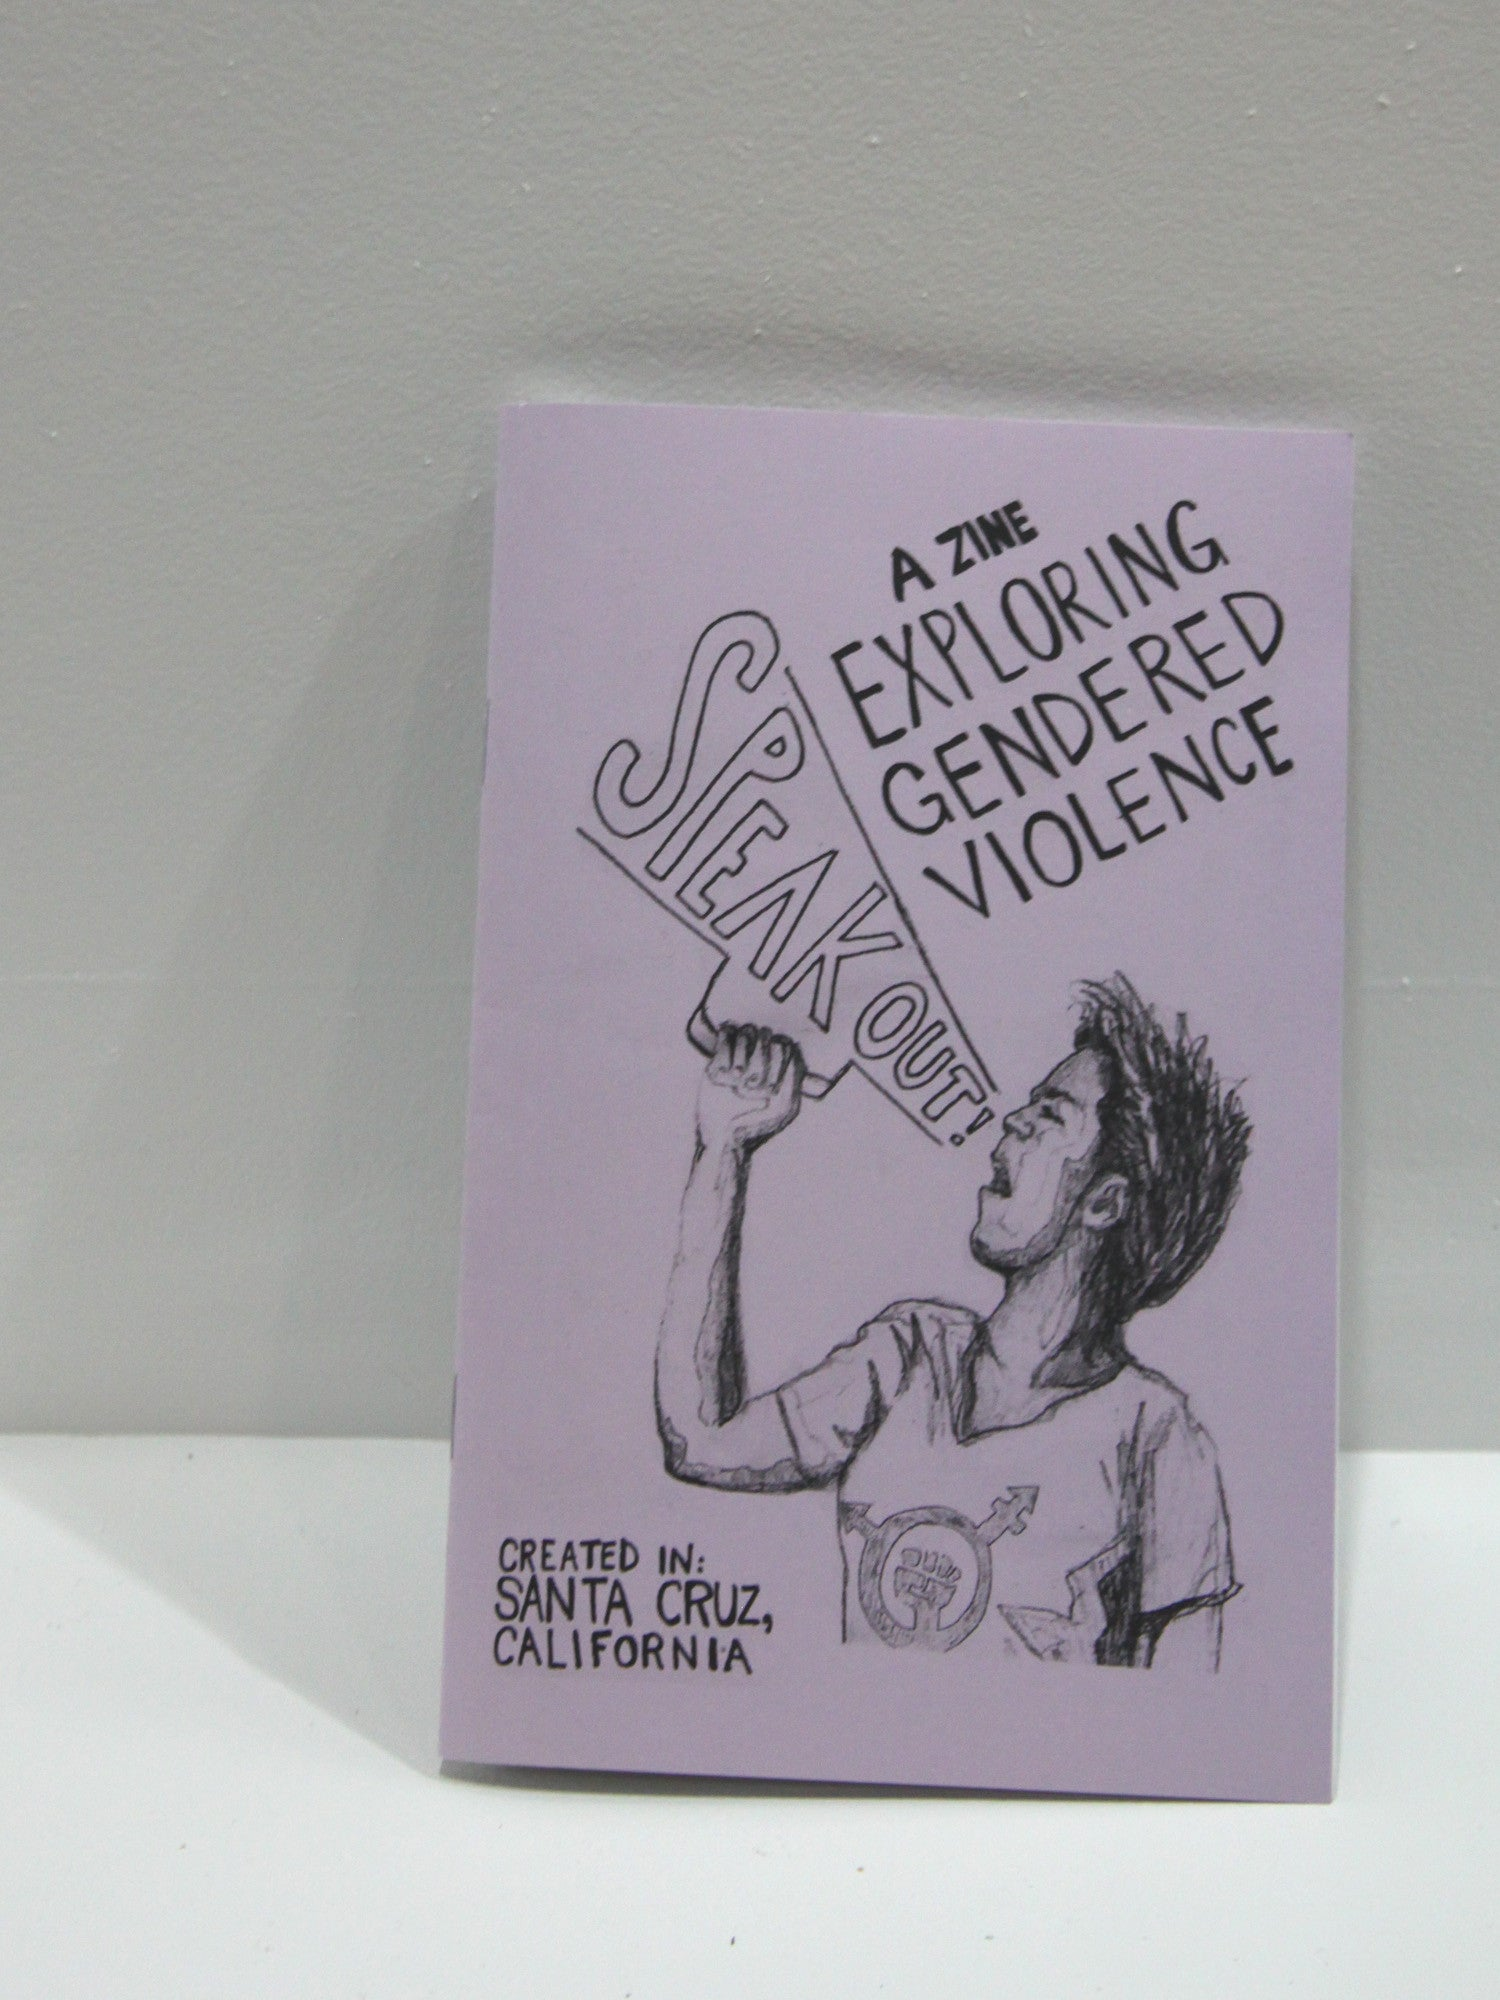 Speak Out!: A Zine Exploring Gendered Violence | Microcosm Publishing at Sustain - Gallery and Shop - Chicago, IL